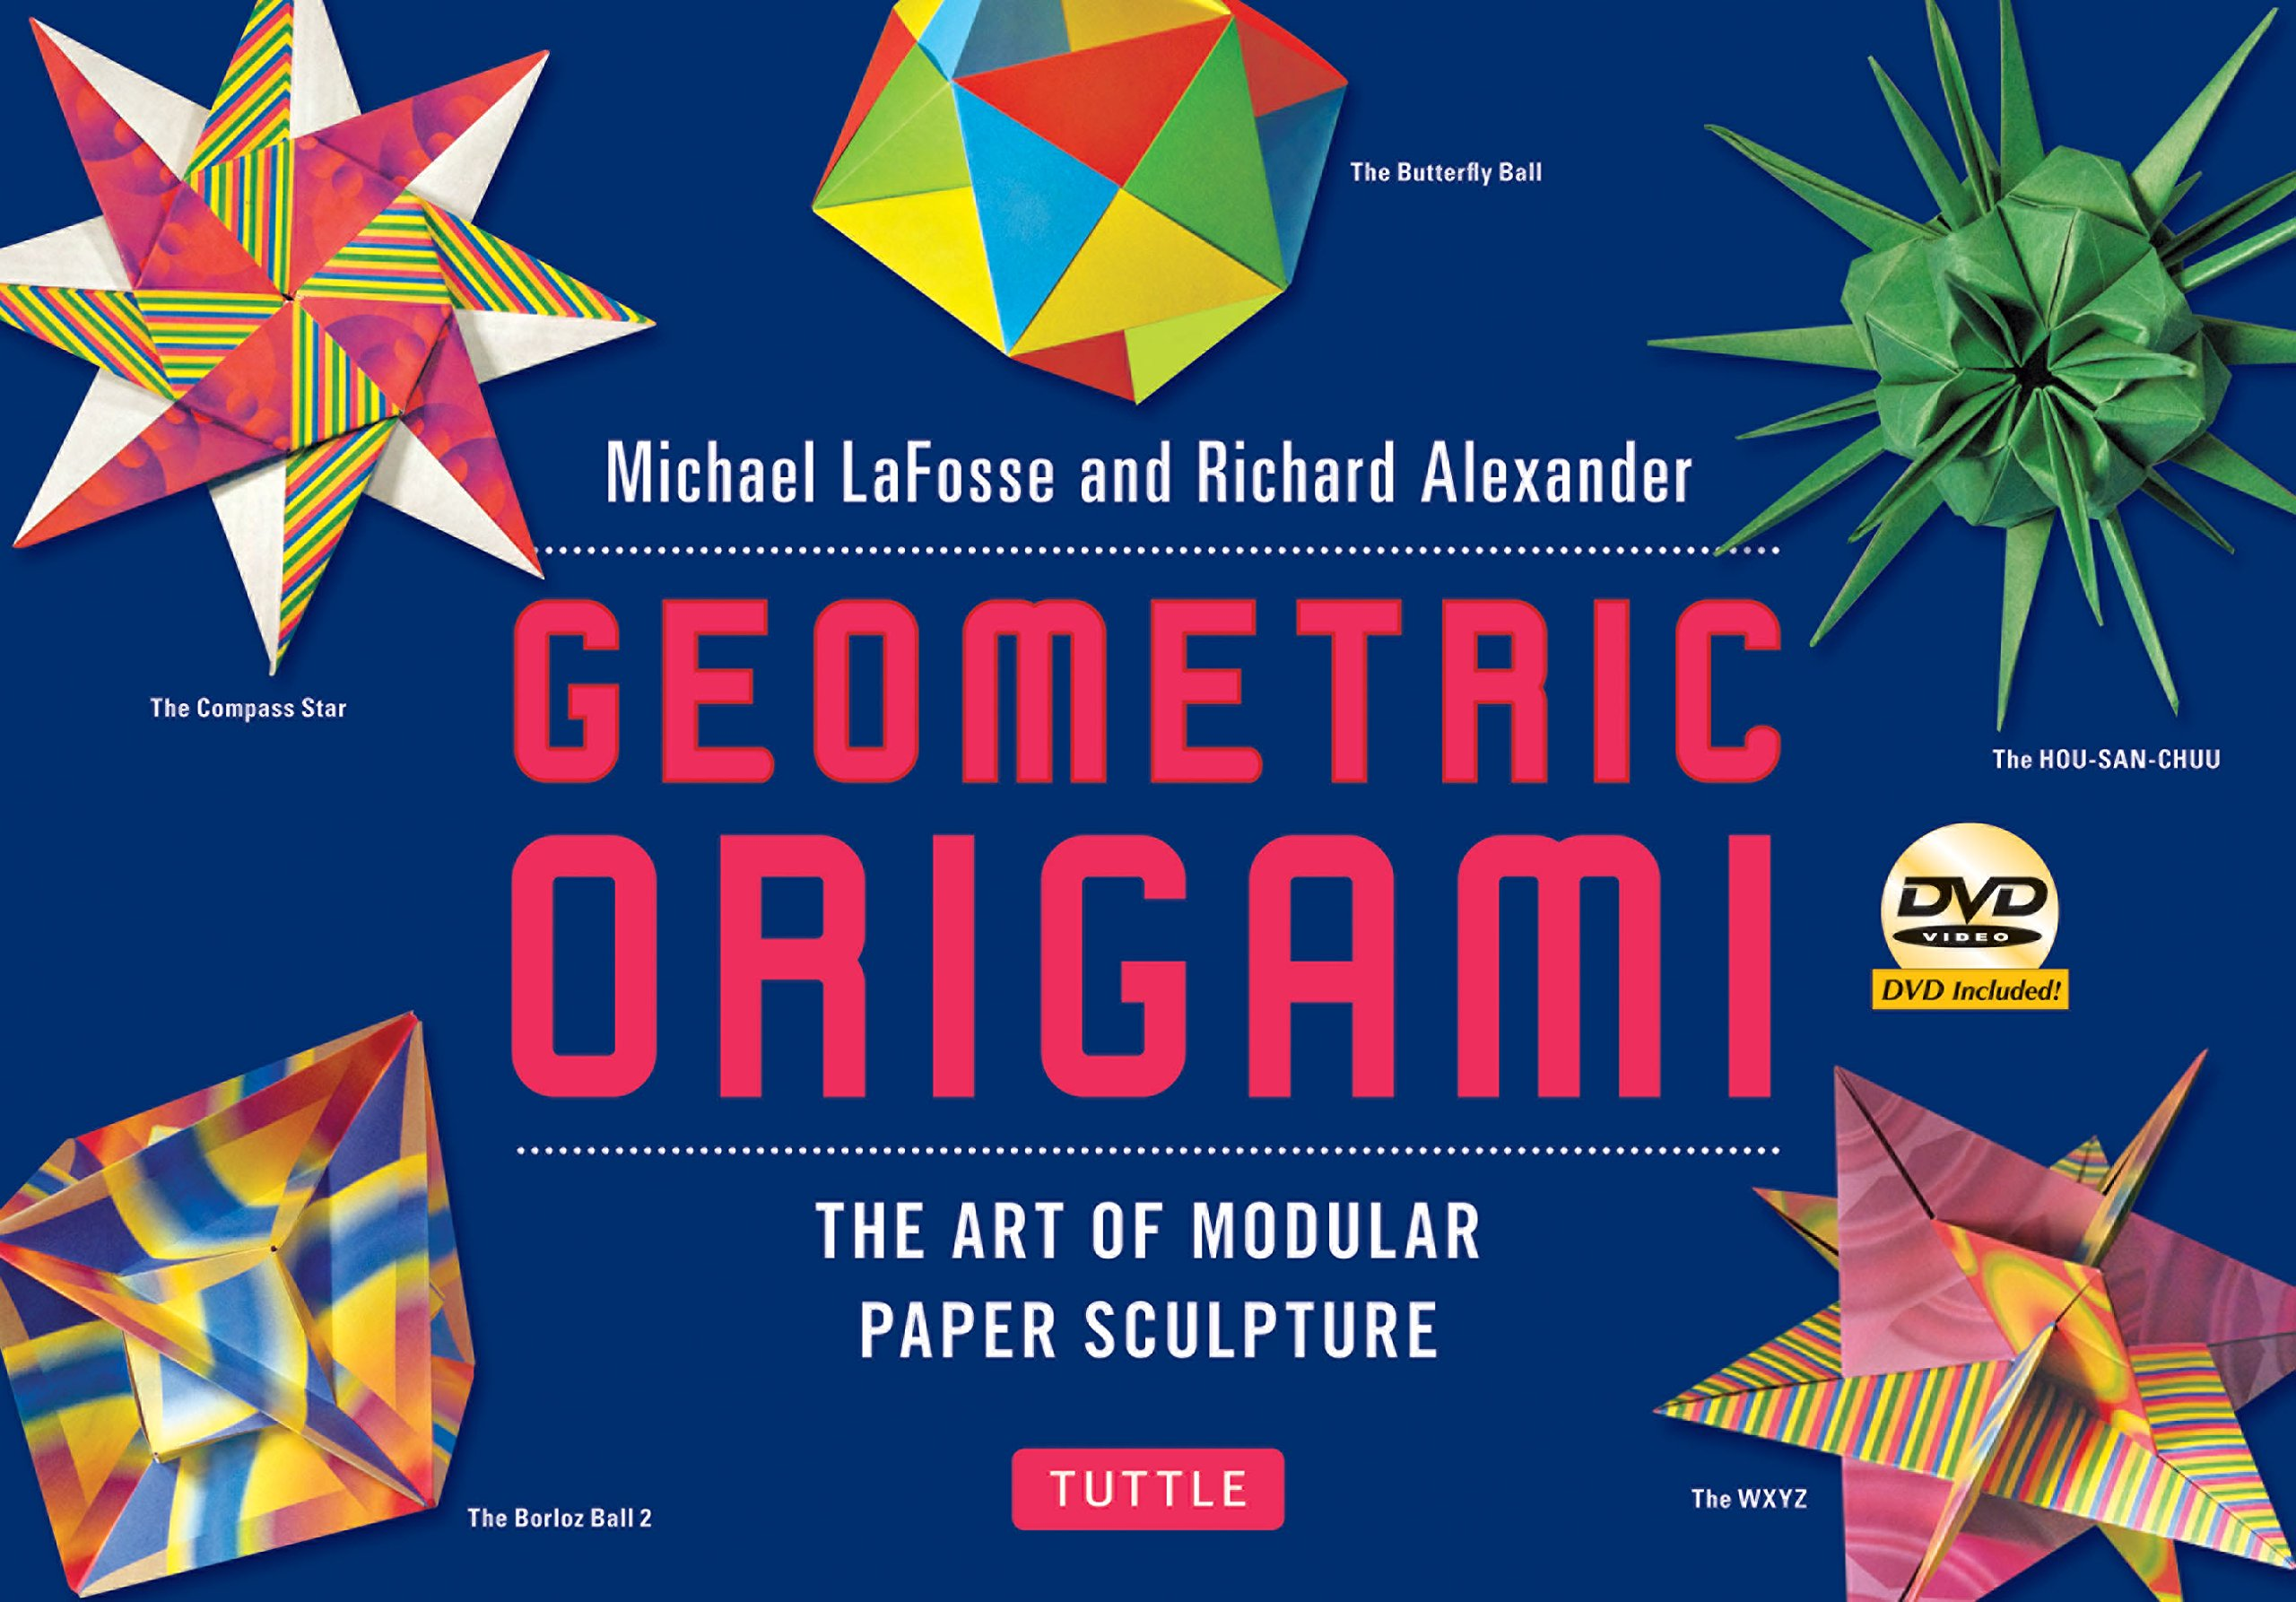 Modular Origami Nut Simple Kusudama Geometric Kit The Art Of Paper Sculpture This Contains An